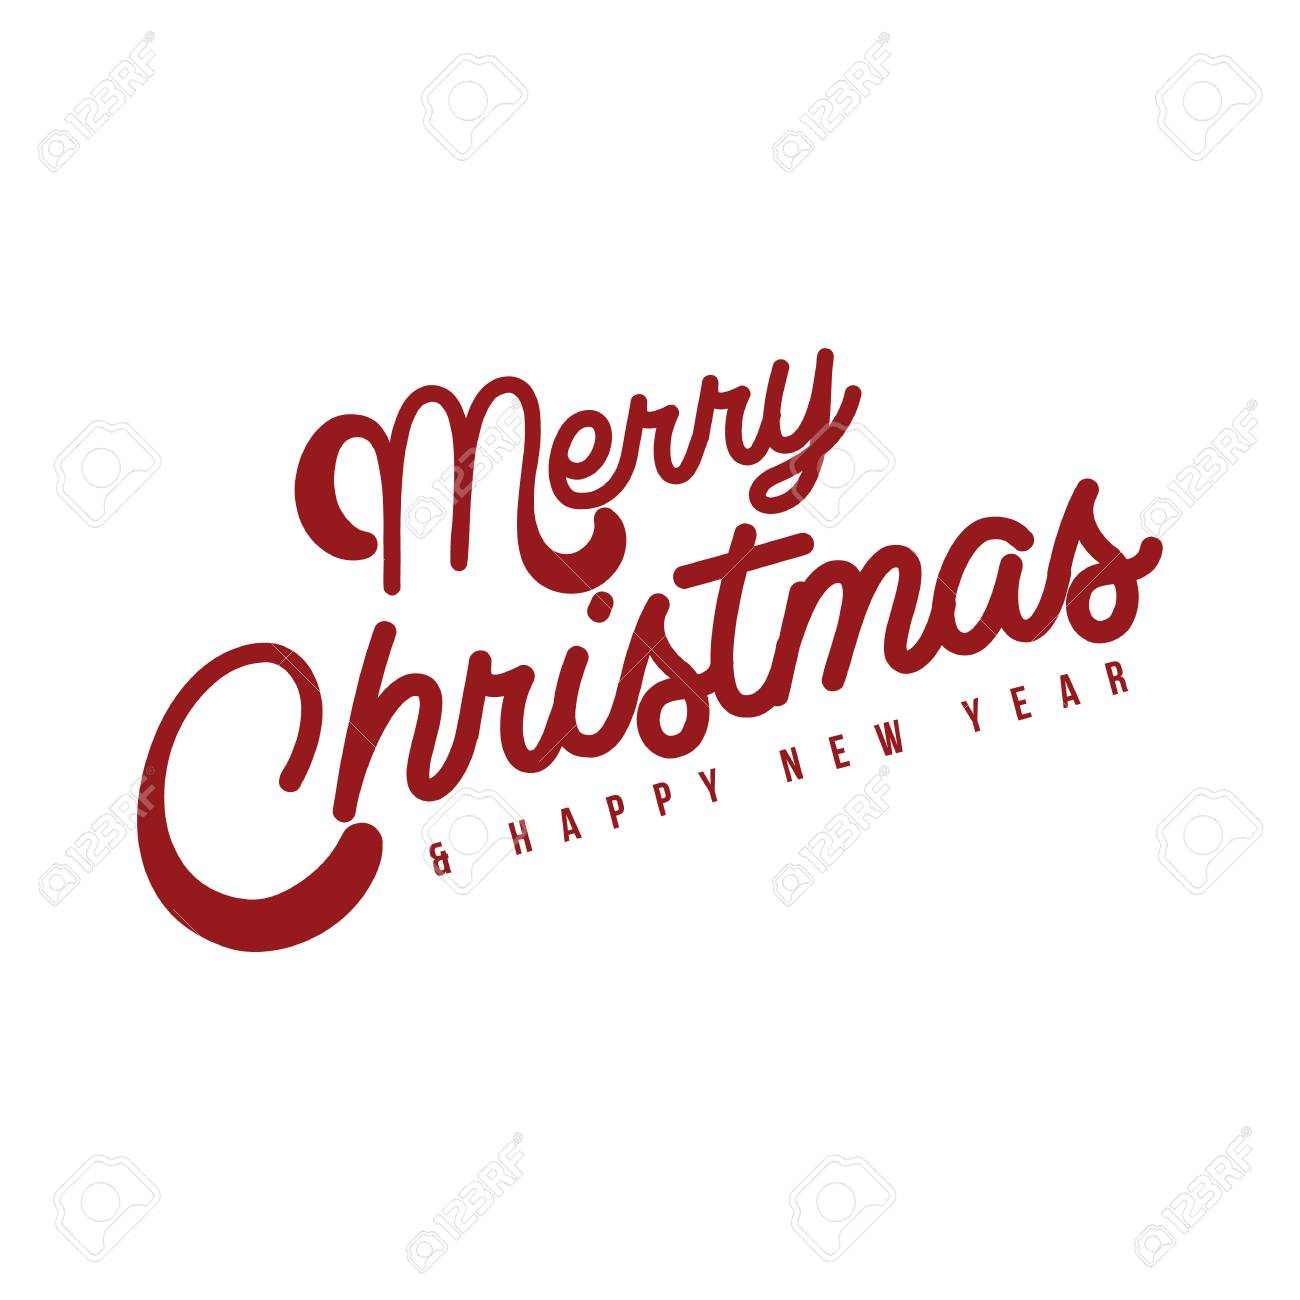 The Best Merry Christmas And Happy New Year Vector